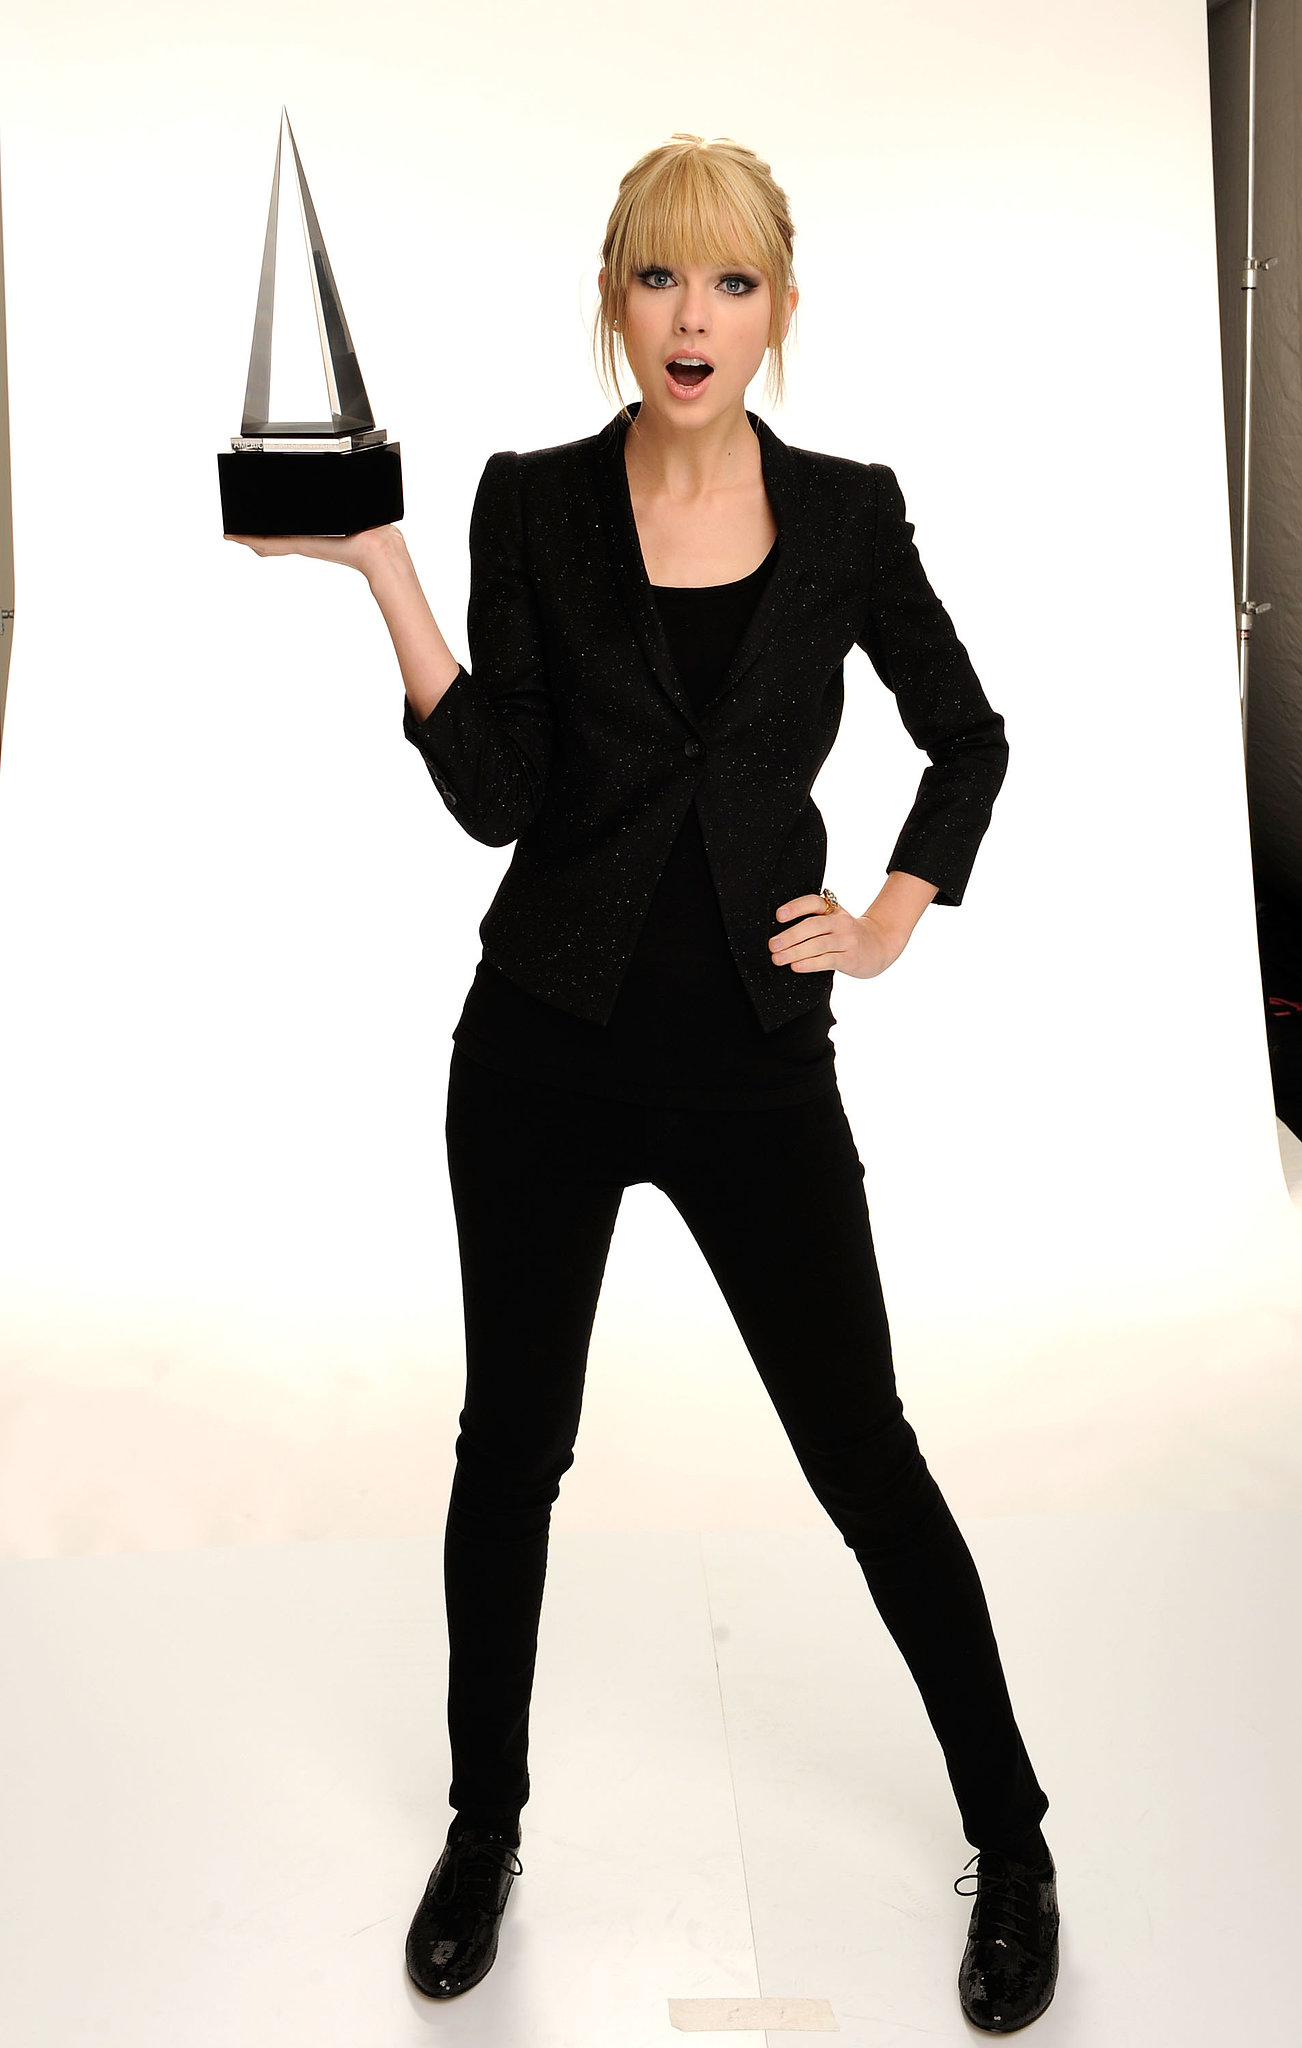 Taylor posed for portraits at the American Music Awards in November 2010.